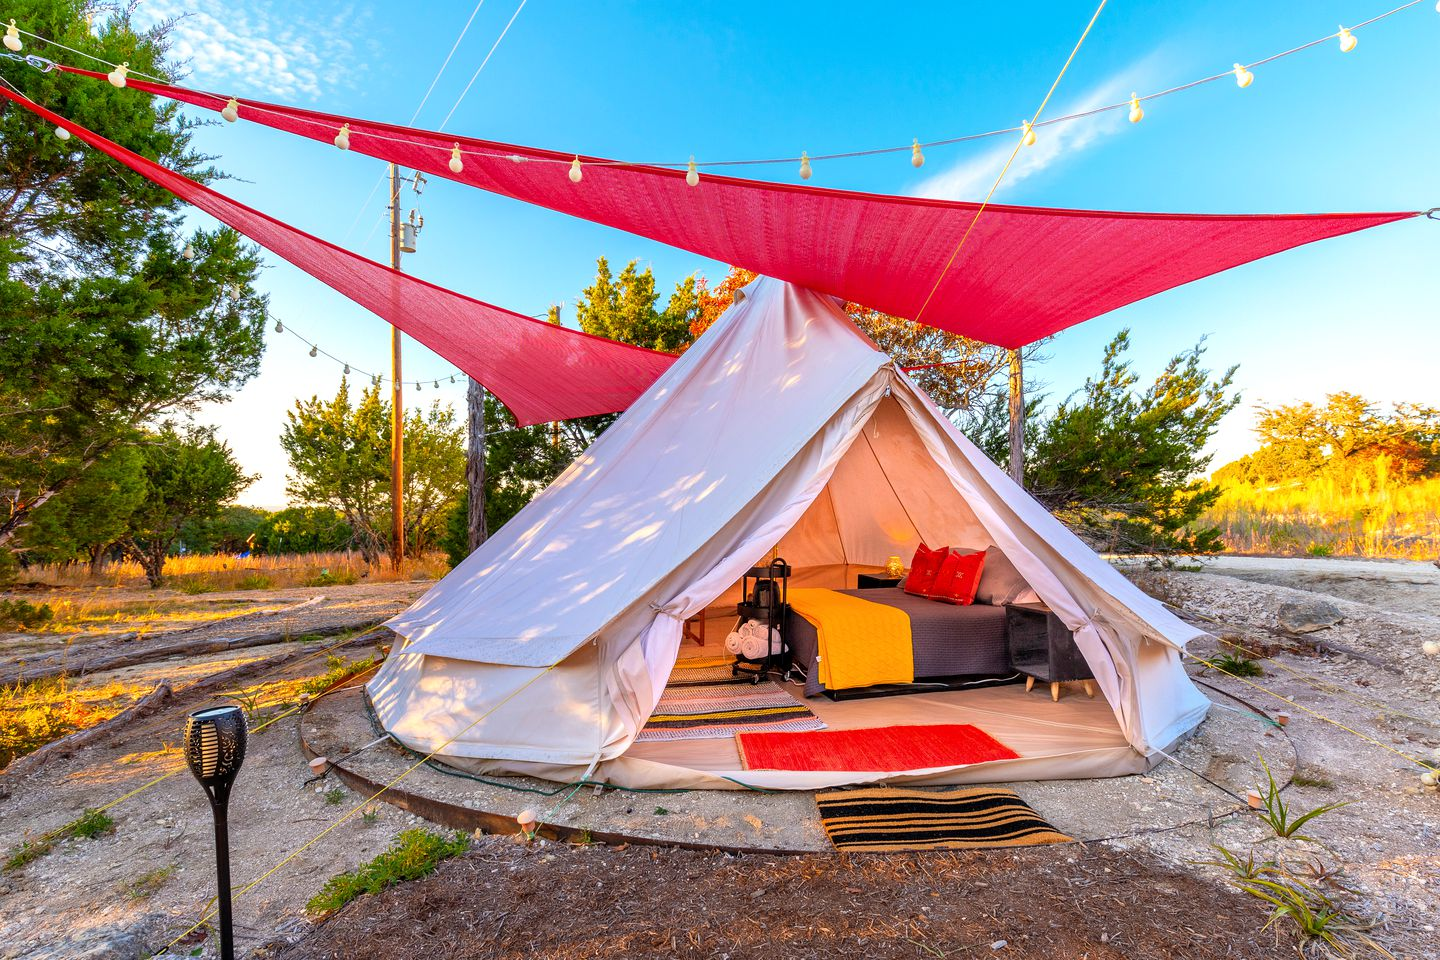 Johnson City luxury bell tent for the best Texas Hill Country glamping!